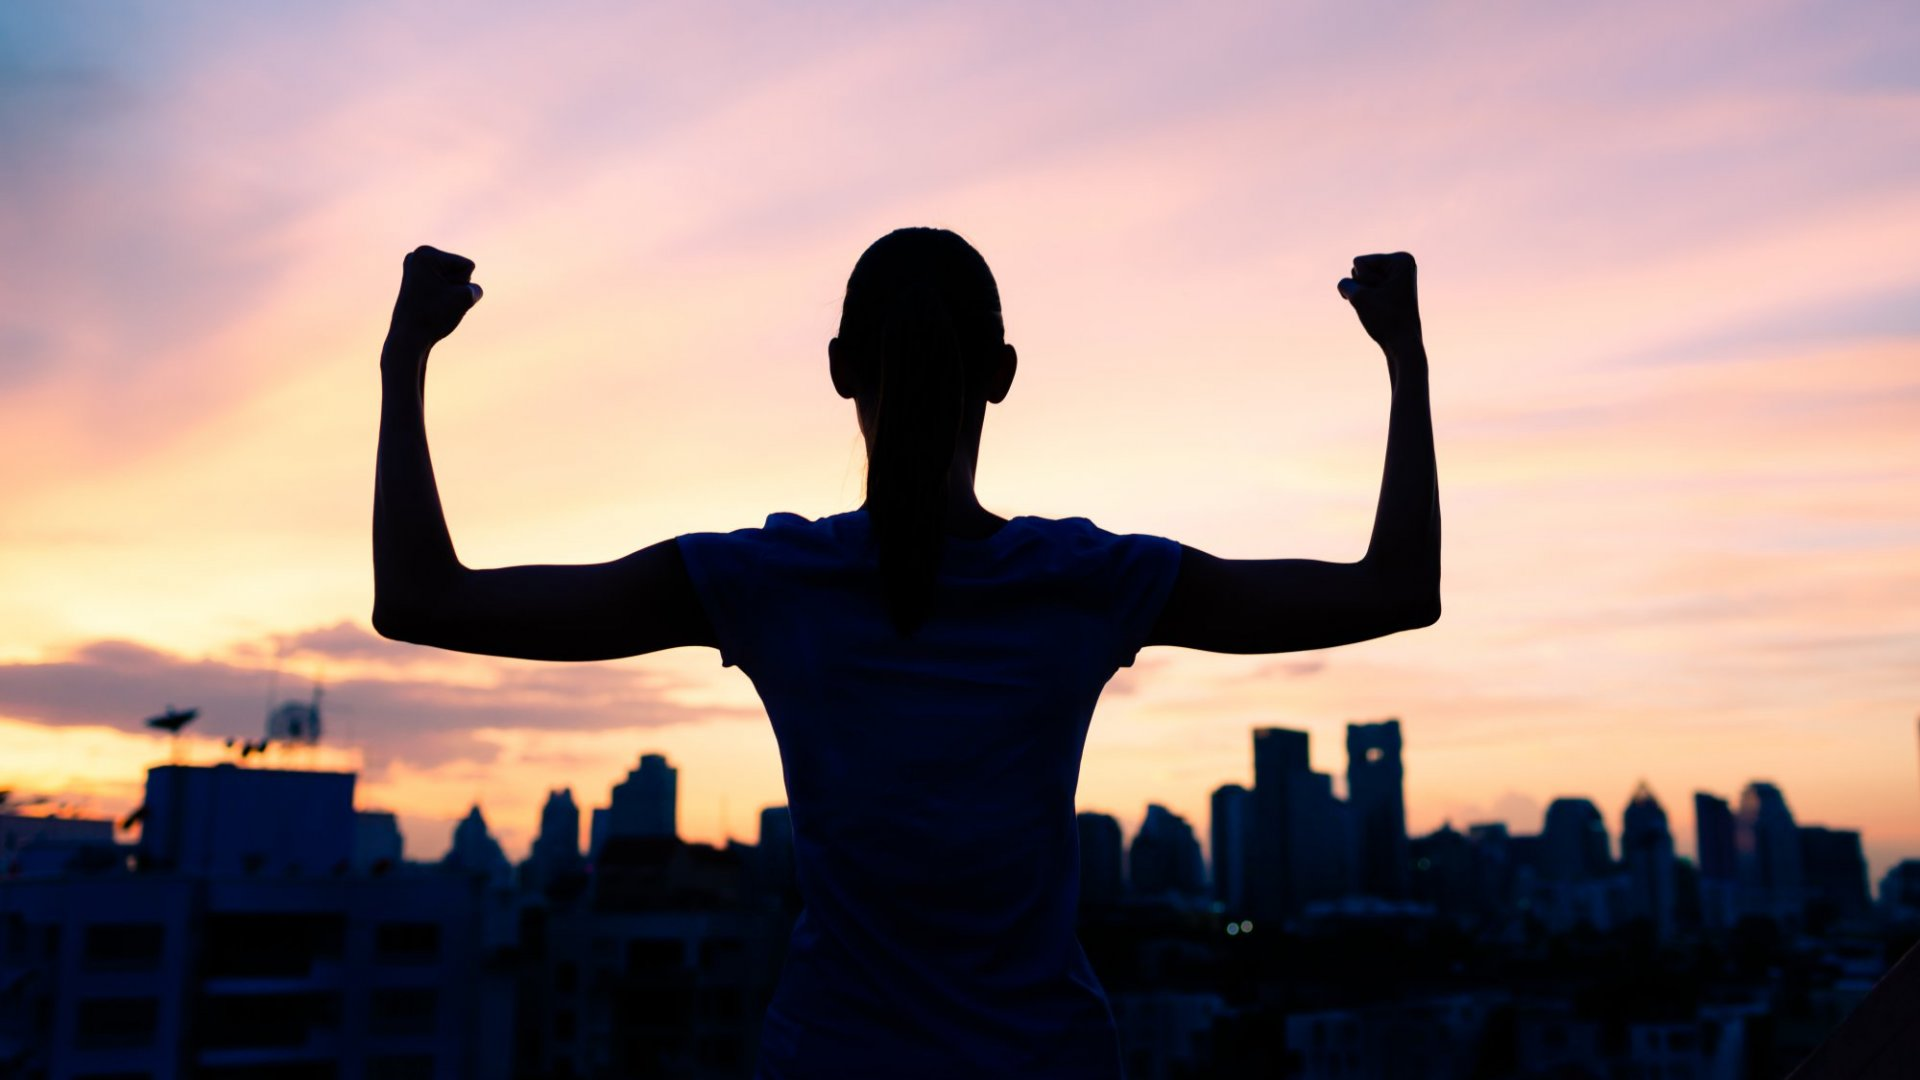 Raising Money? Surprising News for Female Founders and Co-Founders